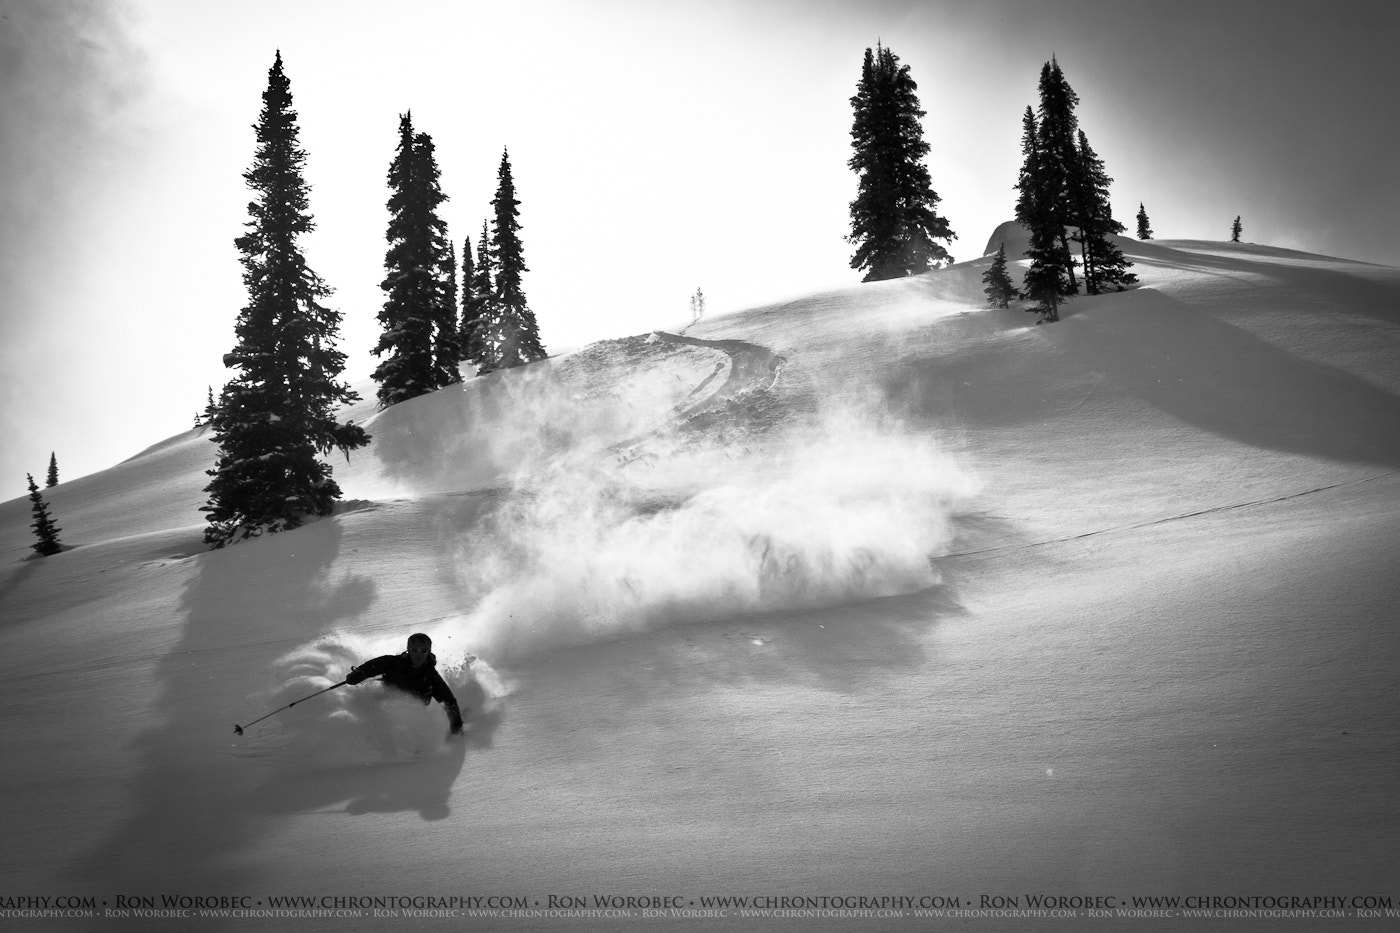 Photograph Powder Bliss! by Ron Worobec on 500px